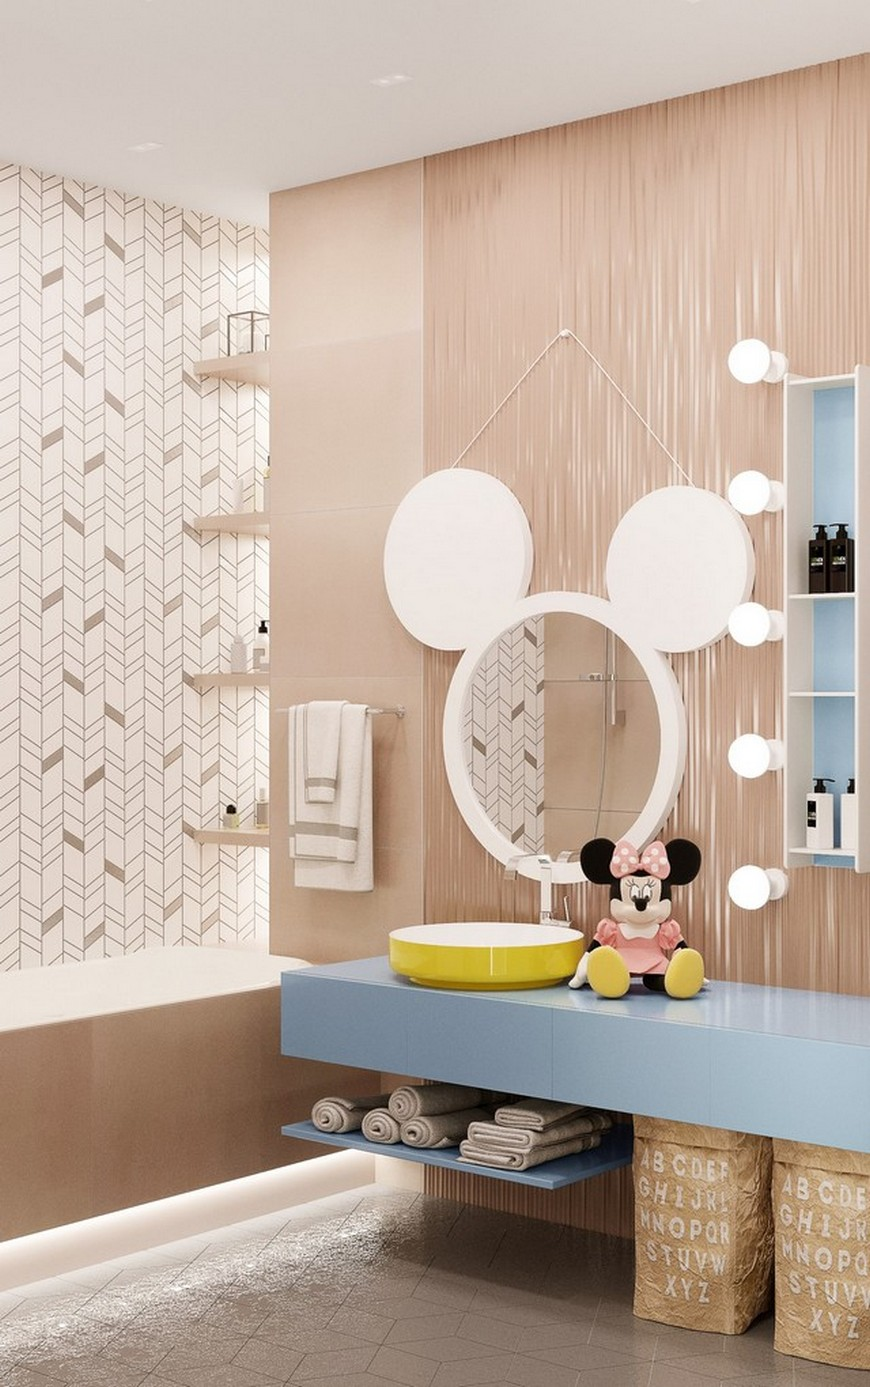 Zanko Design Studio's Incredible Kids Bedroom zanko design studio Zanko Design Studio's Incredible Kids Bedroom Zanko Design Studios Incredible Kids Bedroom 1